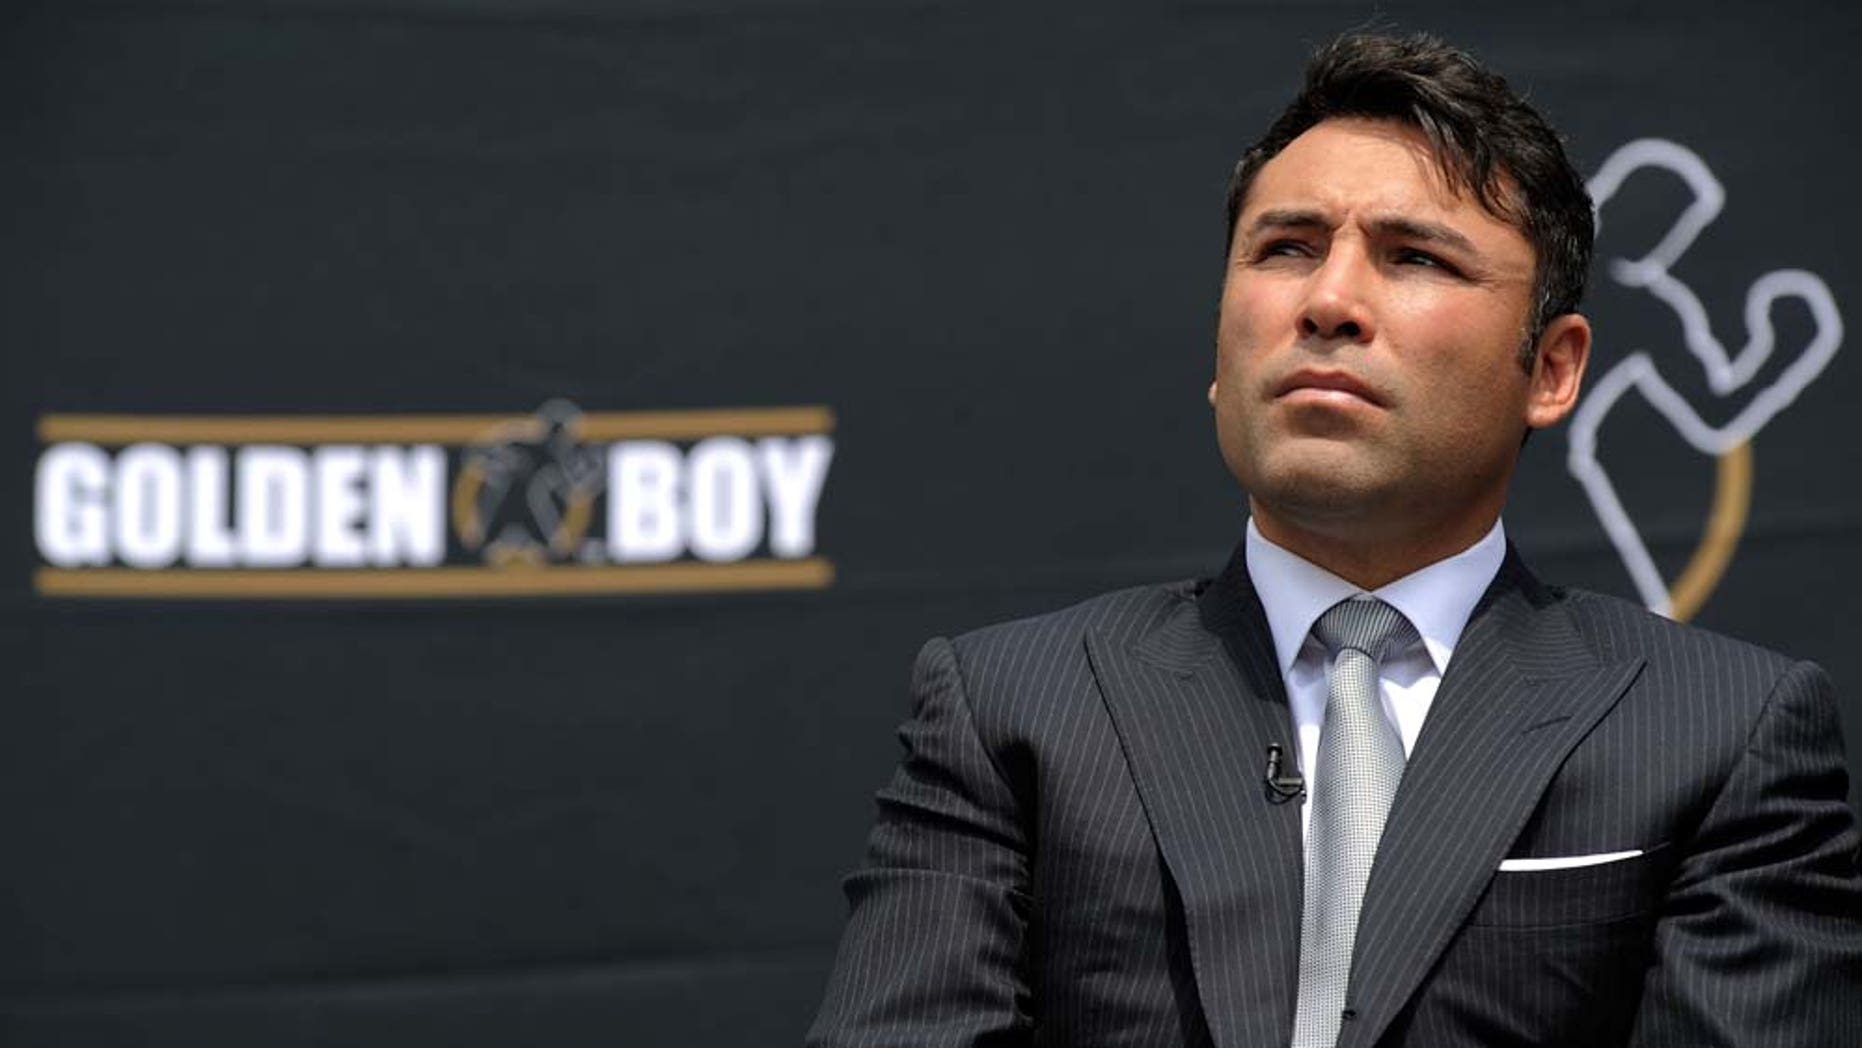 LOS ANGELES, CA - APRIL 14:  Boxer Oscar De La Hoya attends the announcement of his retirement from boxing April 14, 2009 at Staples Center in Los Angeles, California.  (Photo by Kevork Djansezian/Getty Images)